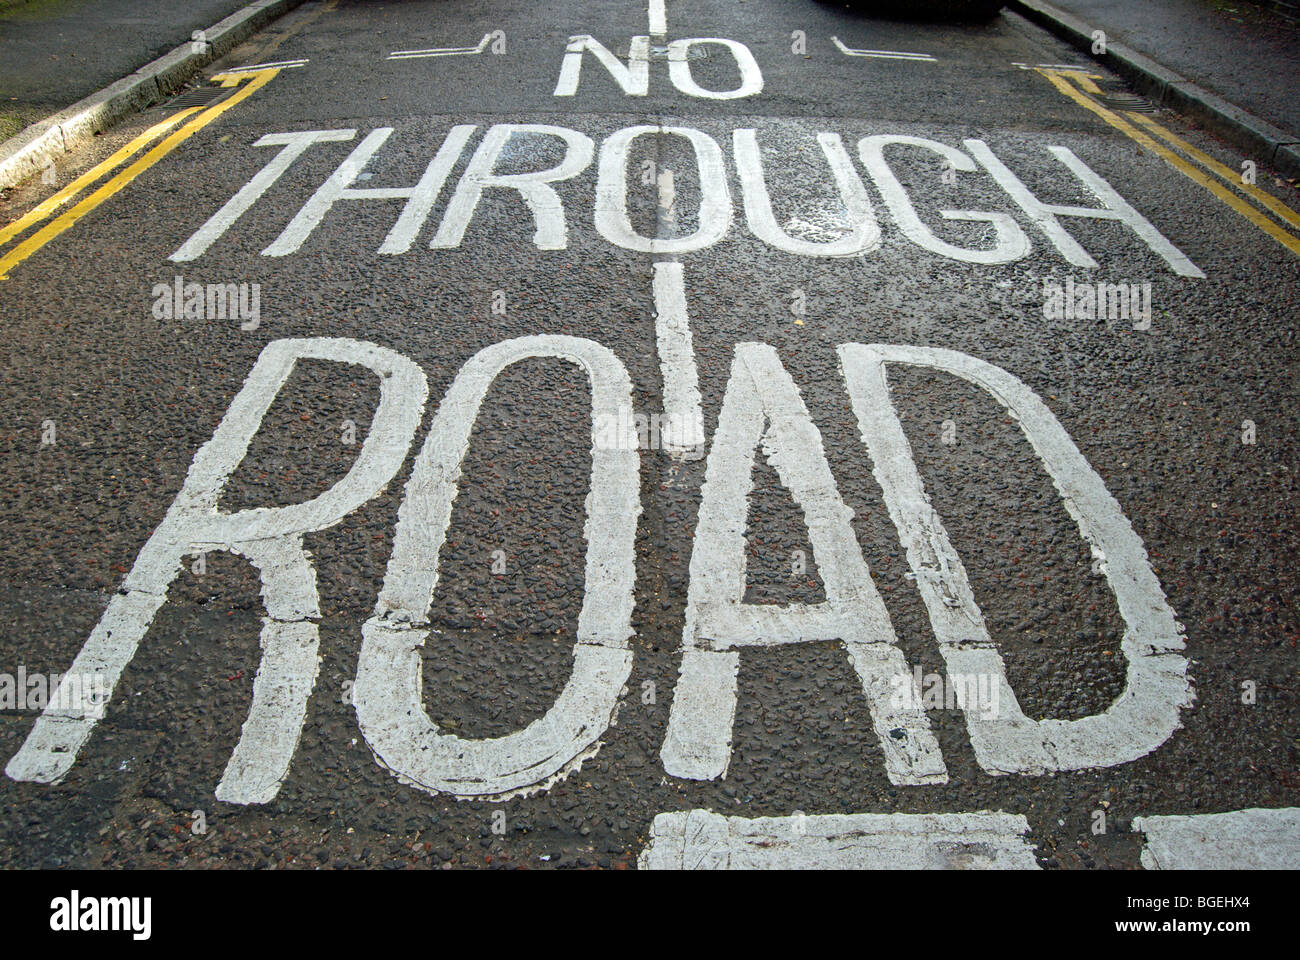 british no through road road marking on a street in wimbledon, southwest london, england - Stock Image